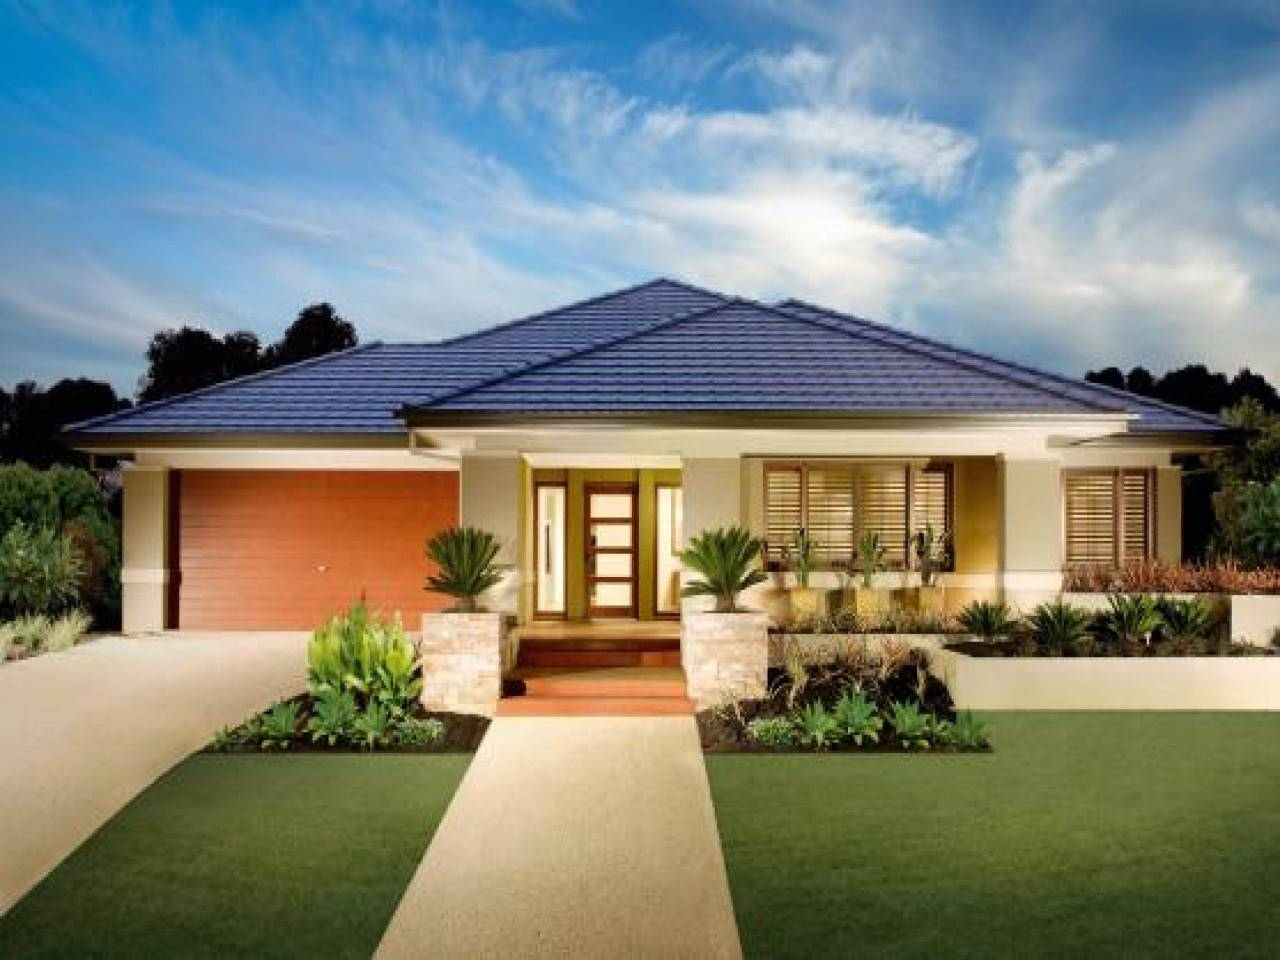 Luxury House Plans One Story Homes Home Improvements House Plans 99478